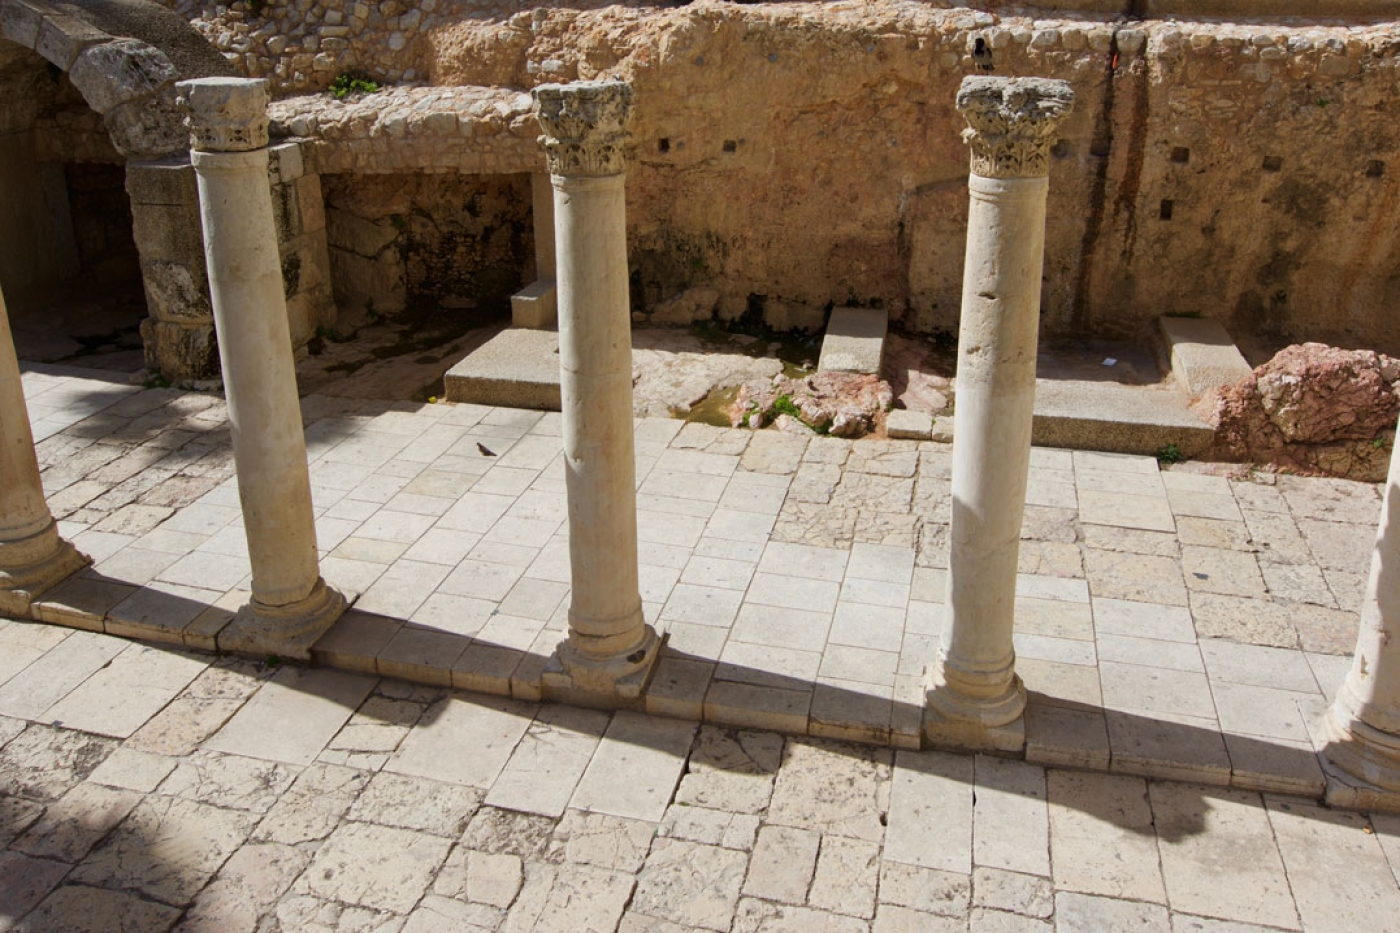 The Cardo – Roman ruins from the 2nd-Century in Jerusalem's Old City